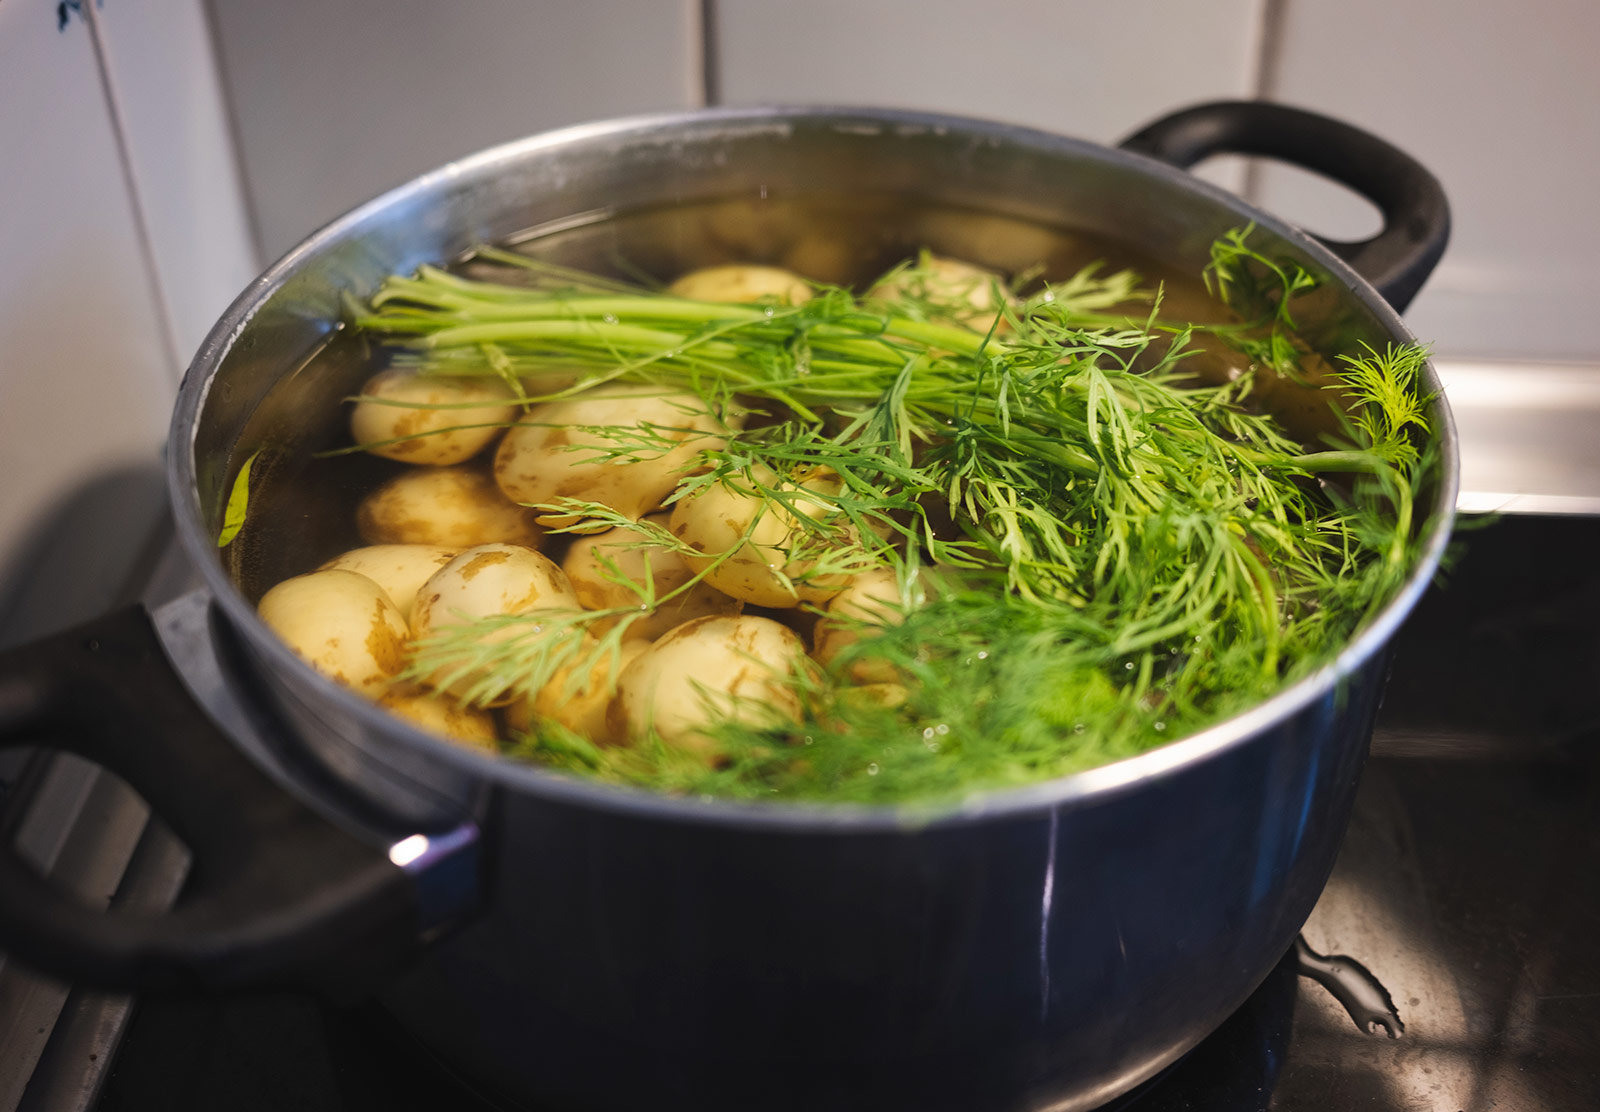 Potatoes and dill in a pan